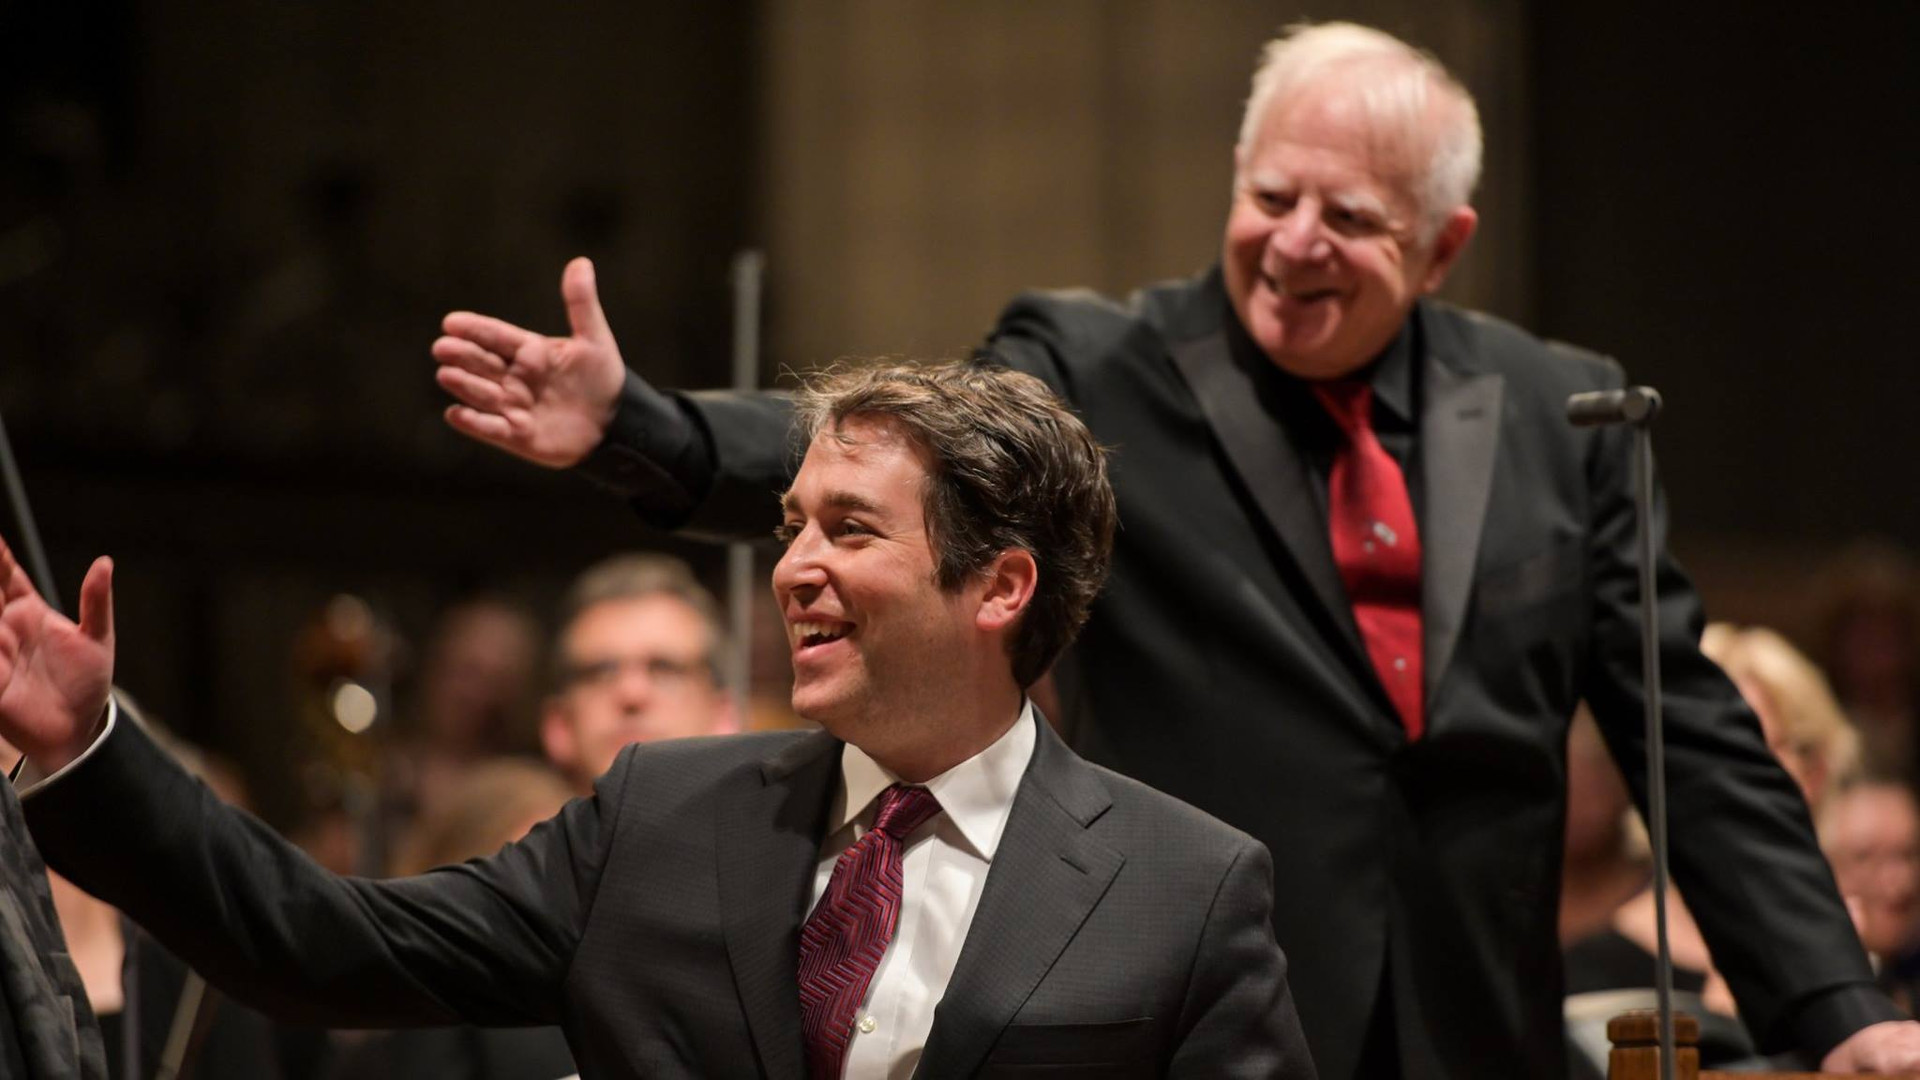 Leonard Slatkin and Stephen Fox Kastalsky Requiem